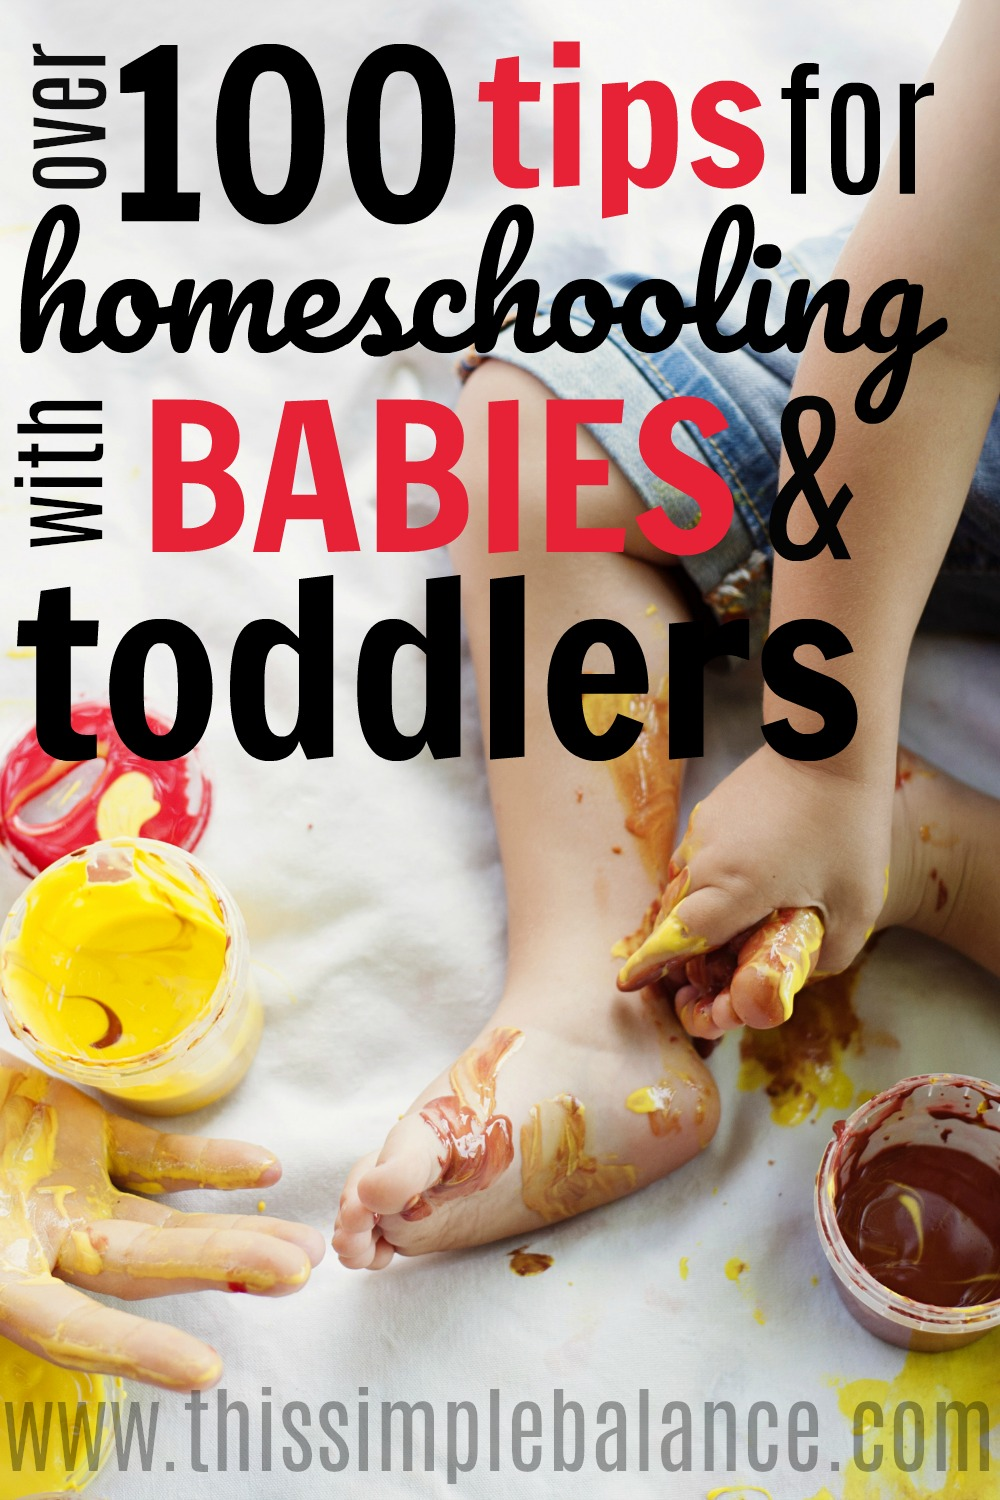 Homeschooling with Babies & Toddlers: It can feel impossible, but all these awesome tips from all sorts of different families and personalities all in one place is SO helpful! Pinning for this school year.